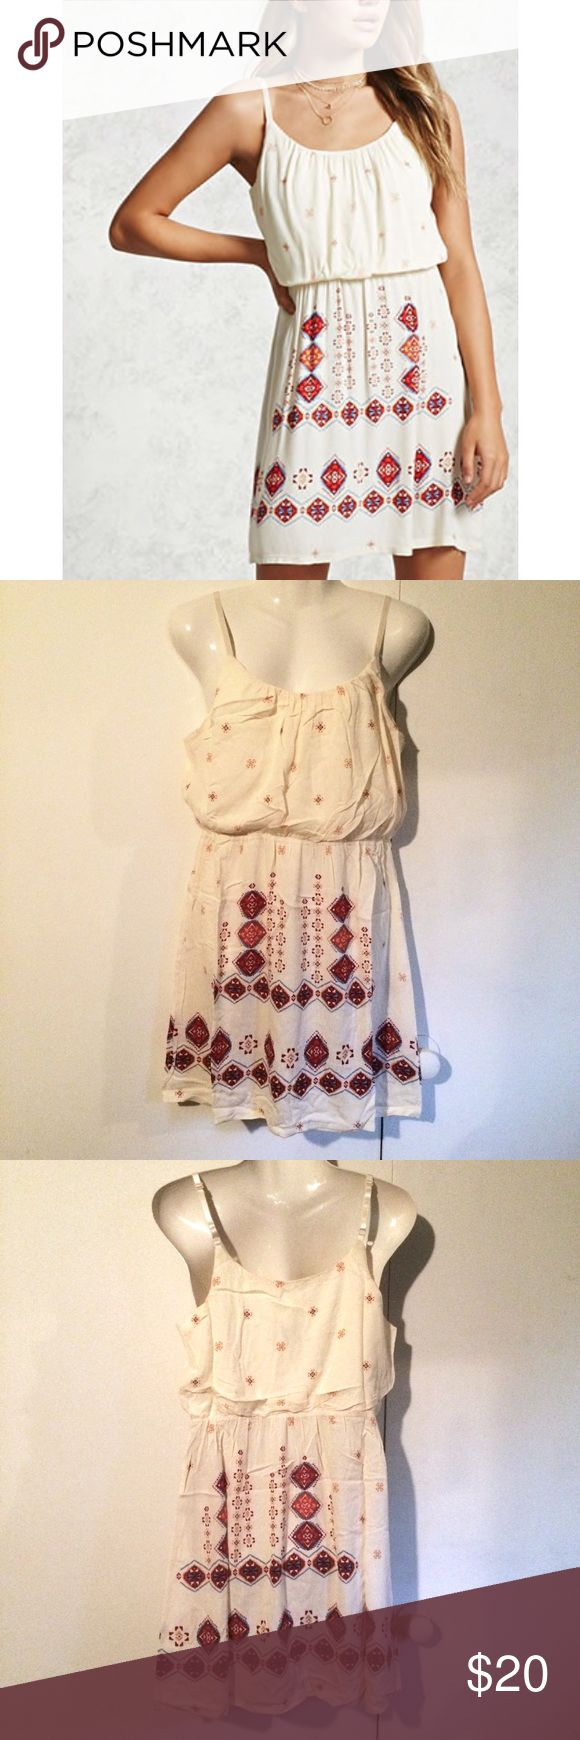 """NEW Ivory Cream Ornate Red Orange Strappy Dress New w/o tags! Ordered online, didn't have tags attached but does have its plastic manufacturer's bag! Ivory cream strappy cami dress with a vintage feel. Ornate red and orange print on skirt. Lined bust, but not a lined skirt. Elasticized waist, no zipper. Adjustable straps. App. 33"""" length shoulder to hem. Loose in the bust, so a bust measurement is a little hard to determine - just roomy. 100% rayon, polyester lining. The dress is F21's…"""